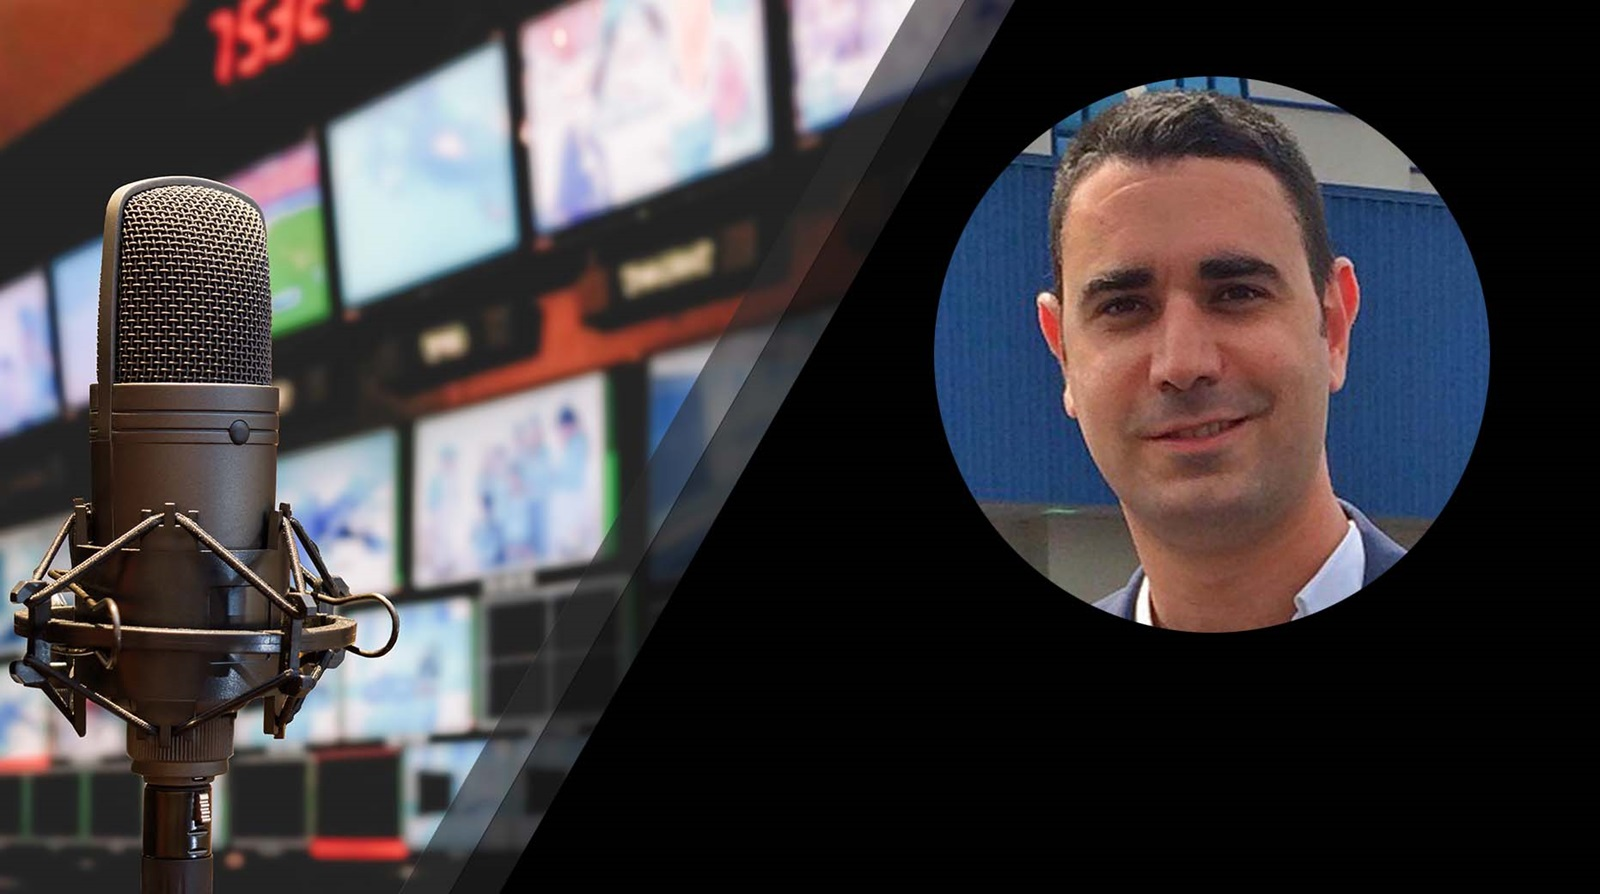 Mohamad Fares on Making the Media